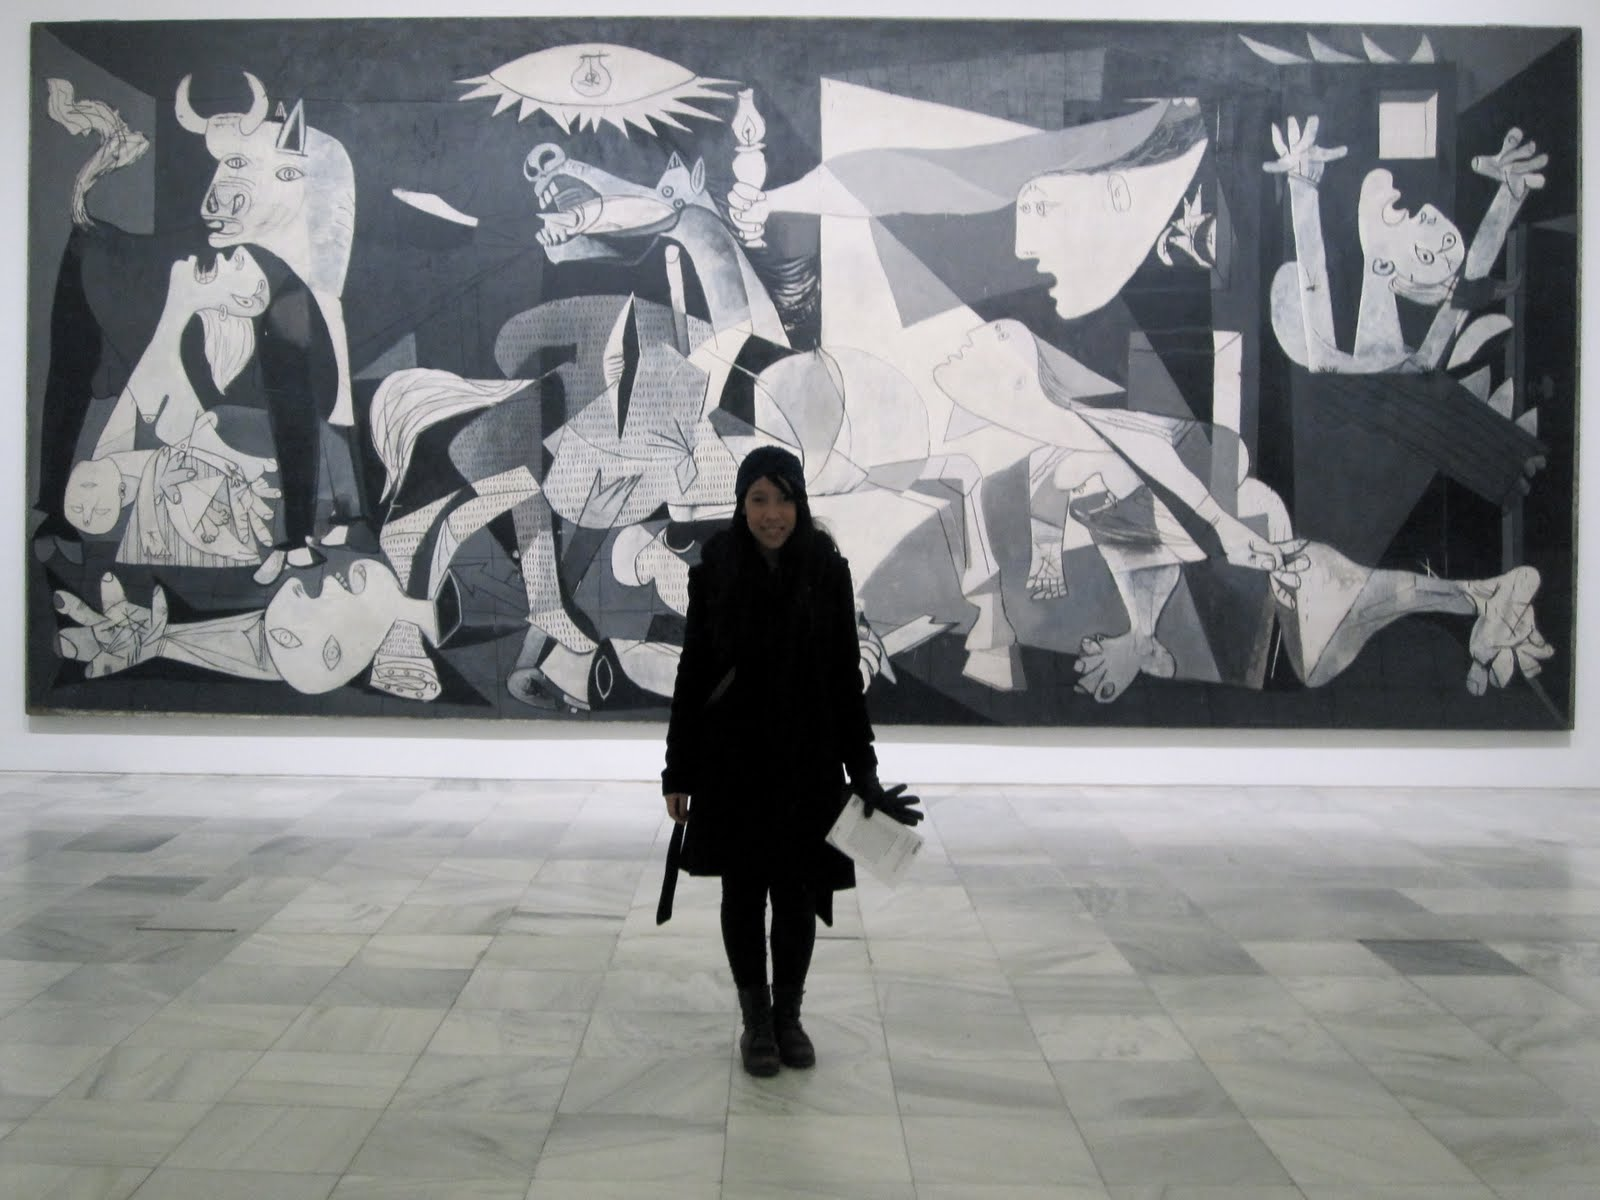 picasso guernica style Pablo picasso: pablo picasso, spanish painter, sculptor, printmaker, and ceramicist, one of the greatest artists of the 20th century and cocreator of cubism.